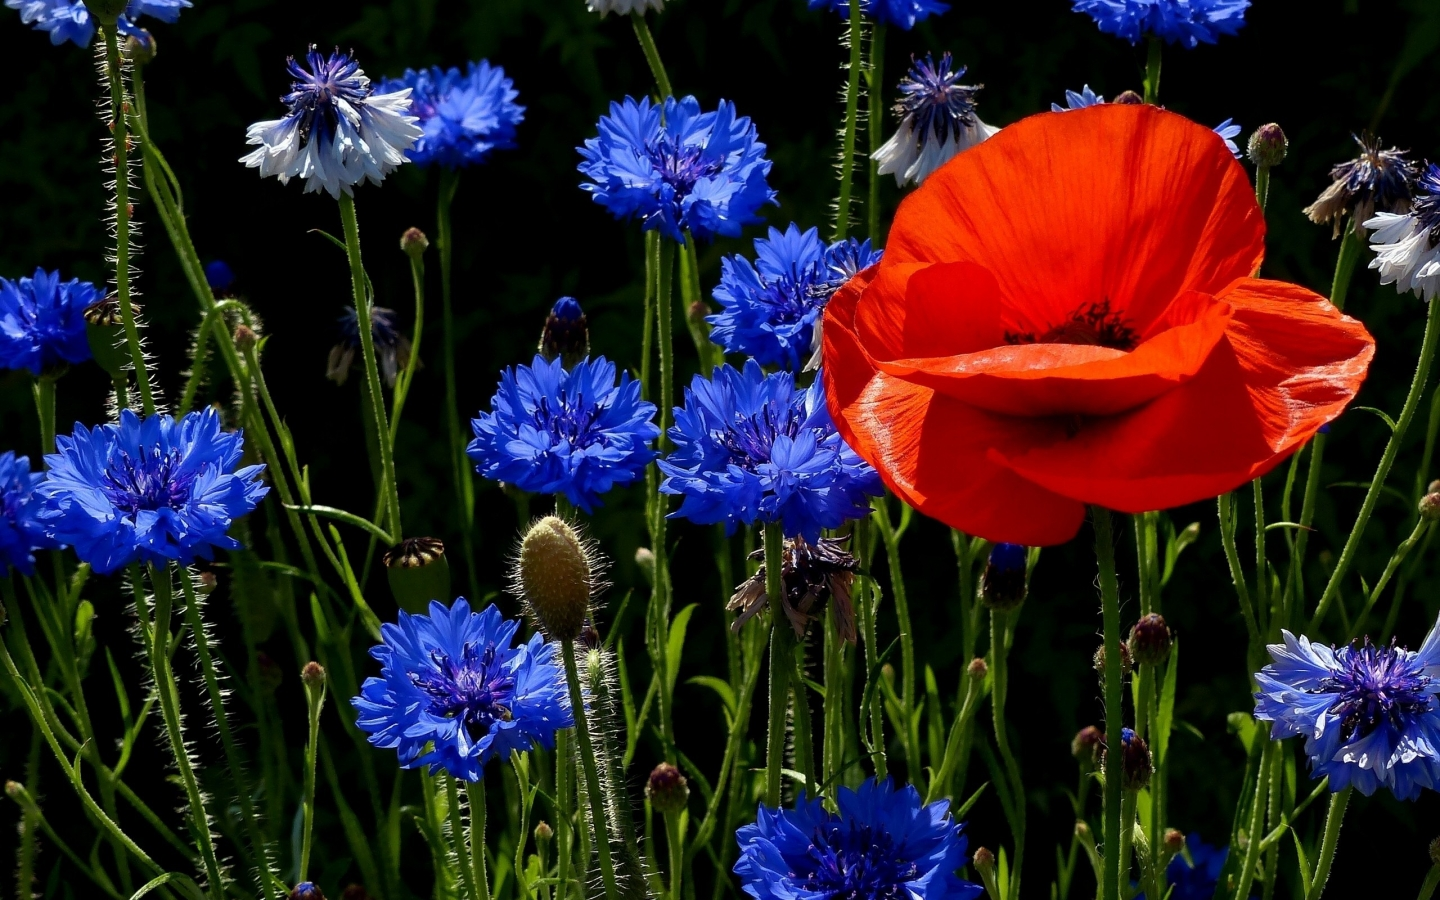 Poppies and Cornflowers for 1440 x 900 widescreen resolution